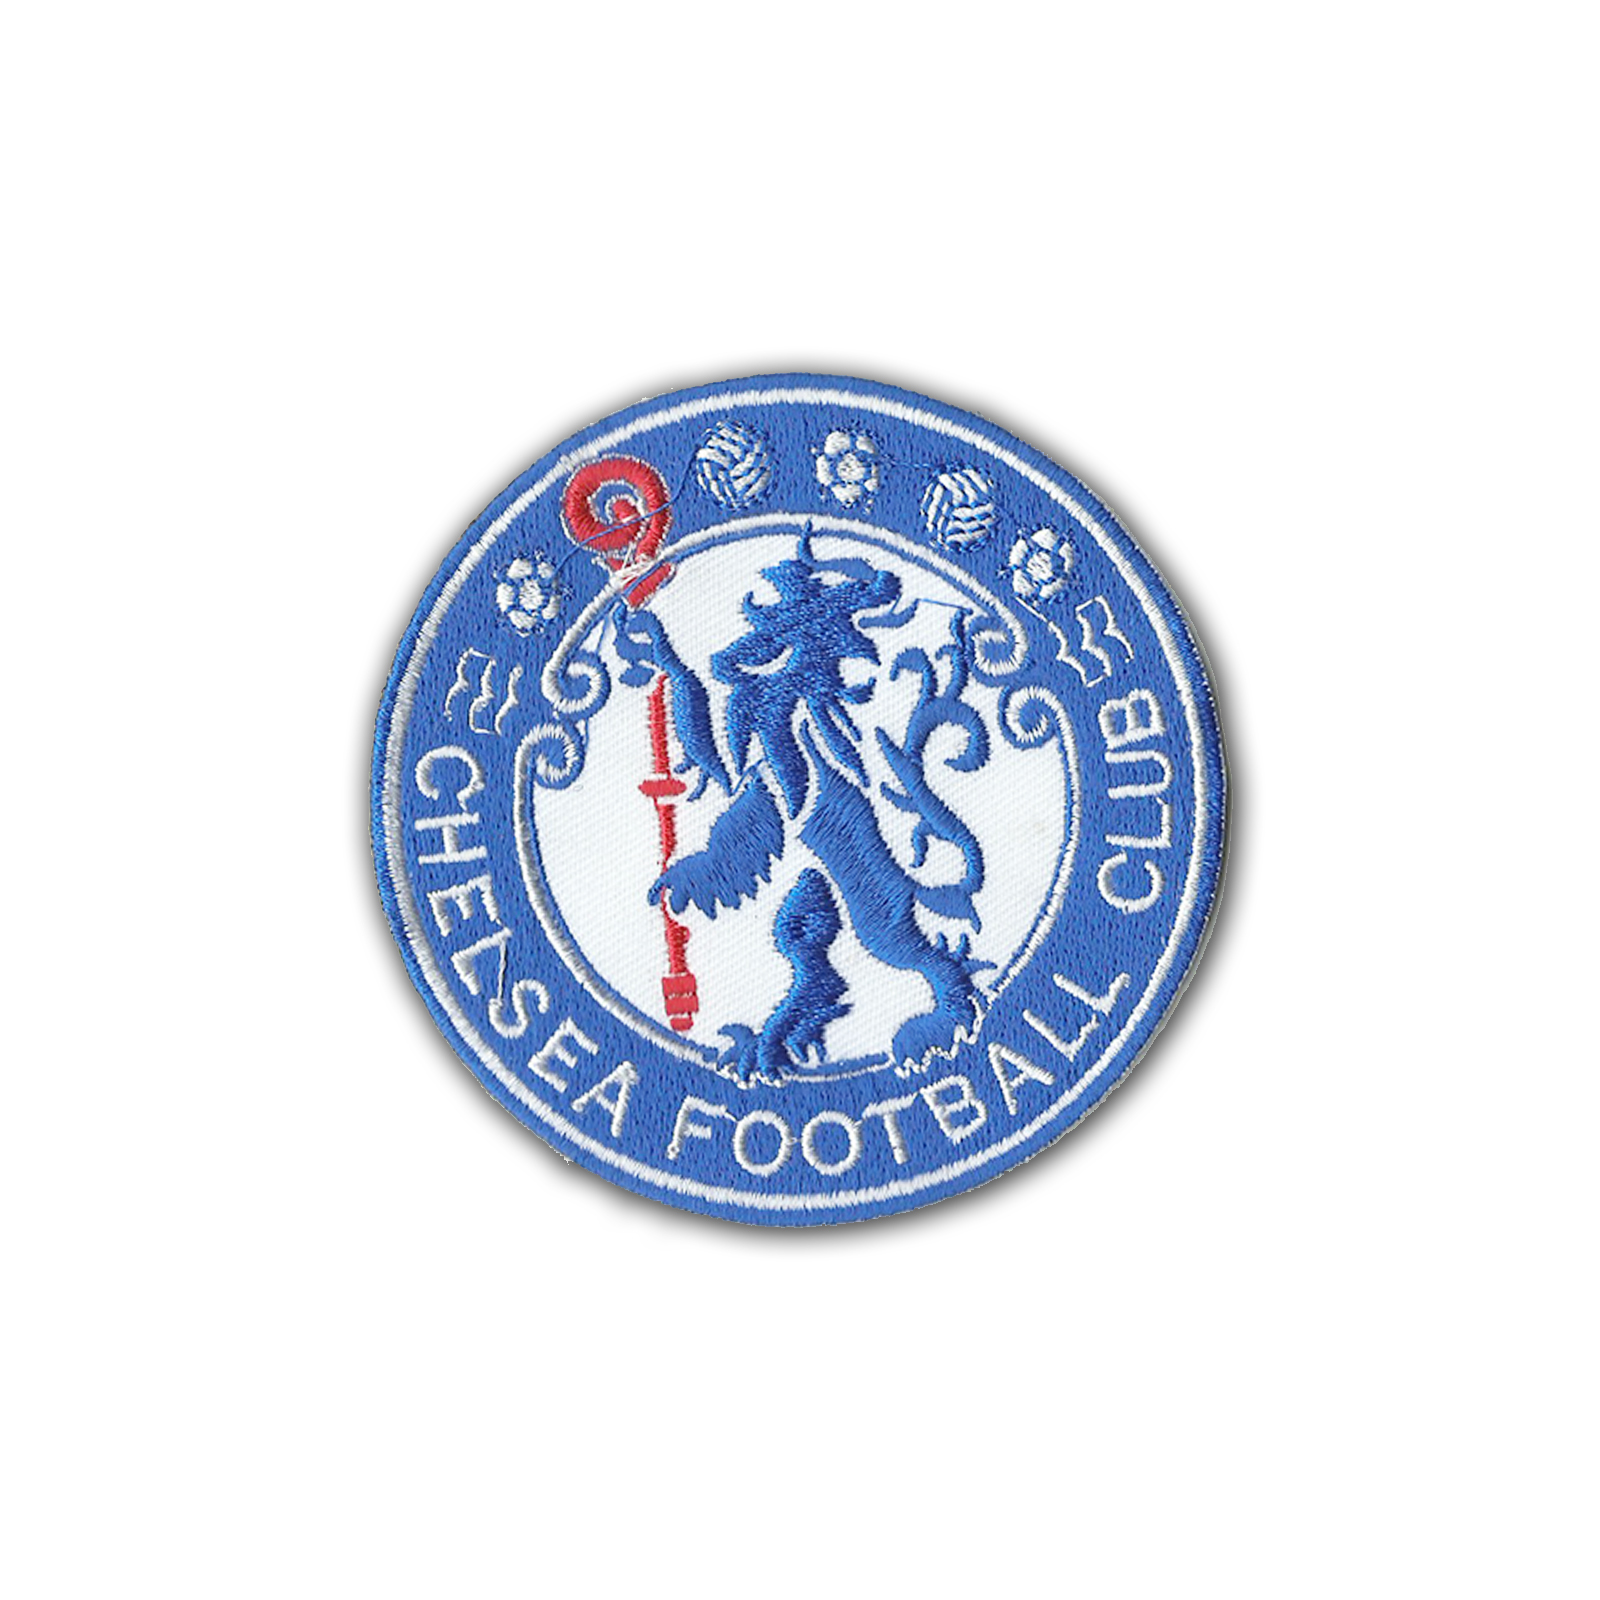 "Chelsea League Premier League Football Club logo Jacket T Shirt Embroidered Patch 3.5"" inch Logo Sew Ironed On Badge Embroidery Applique Patch"